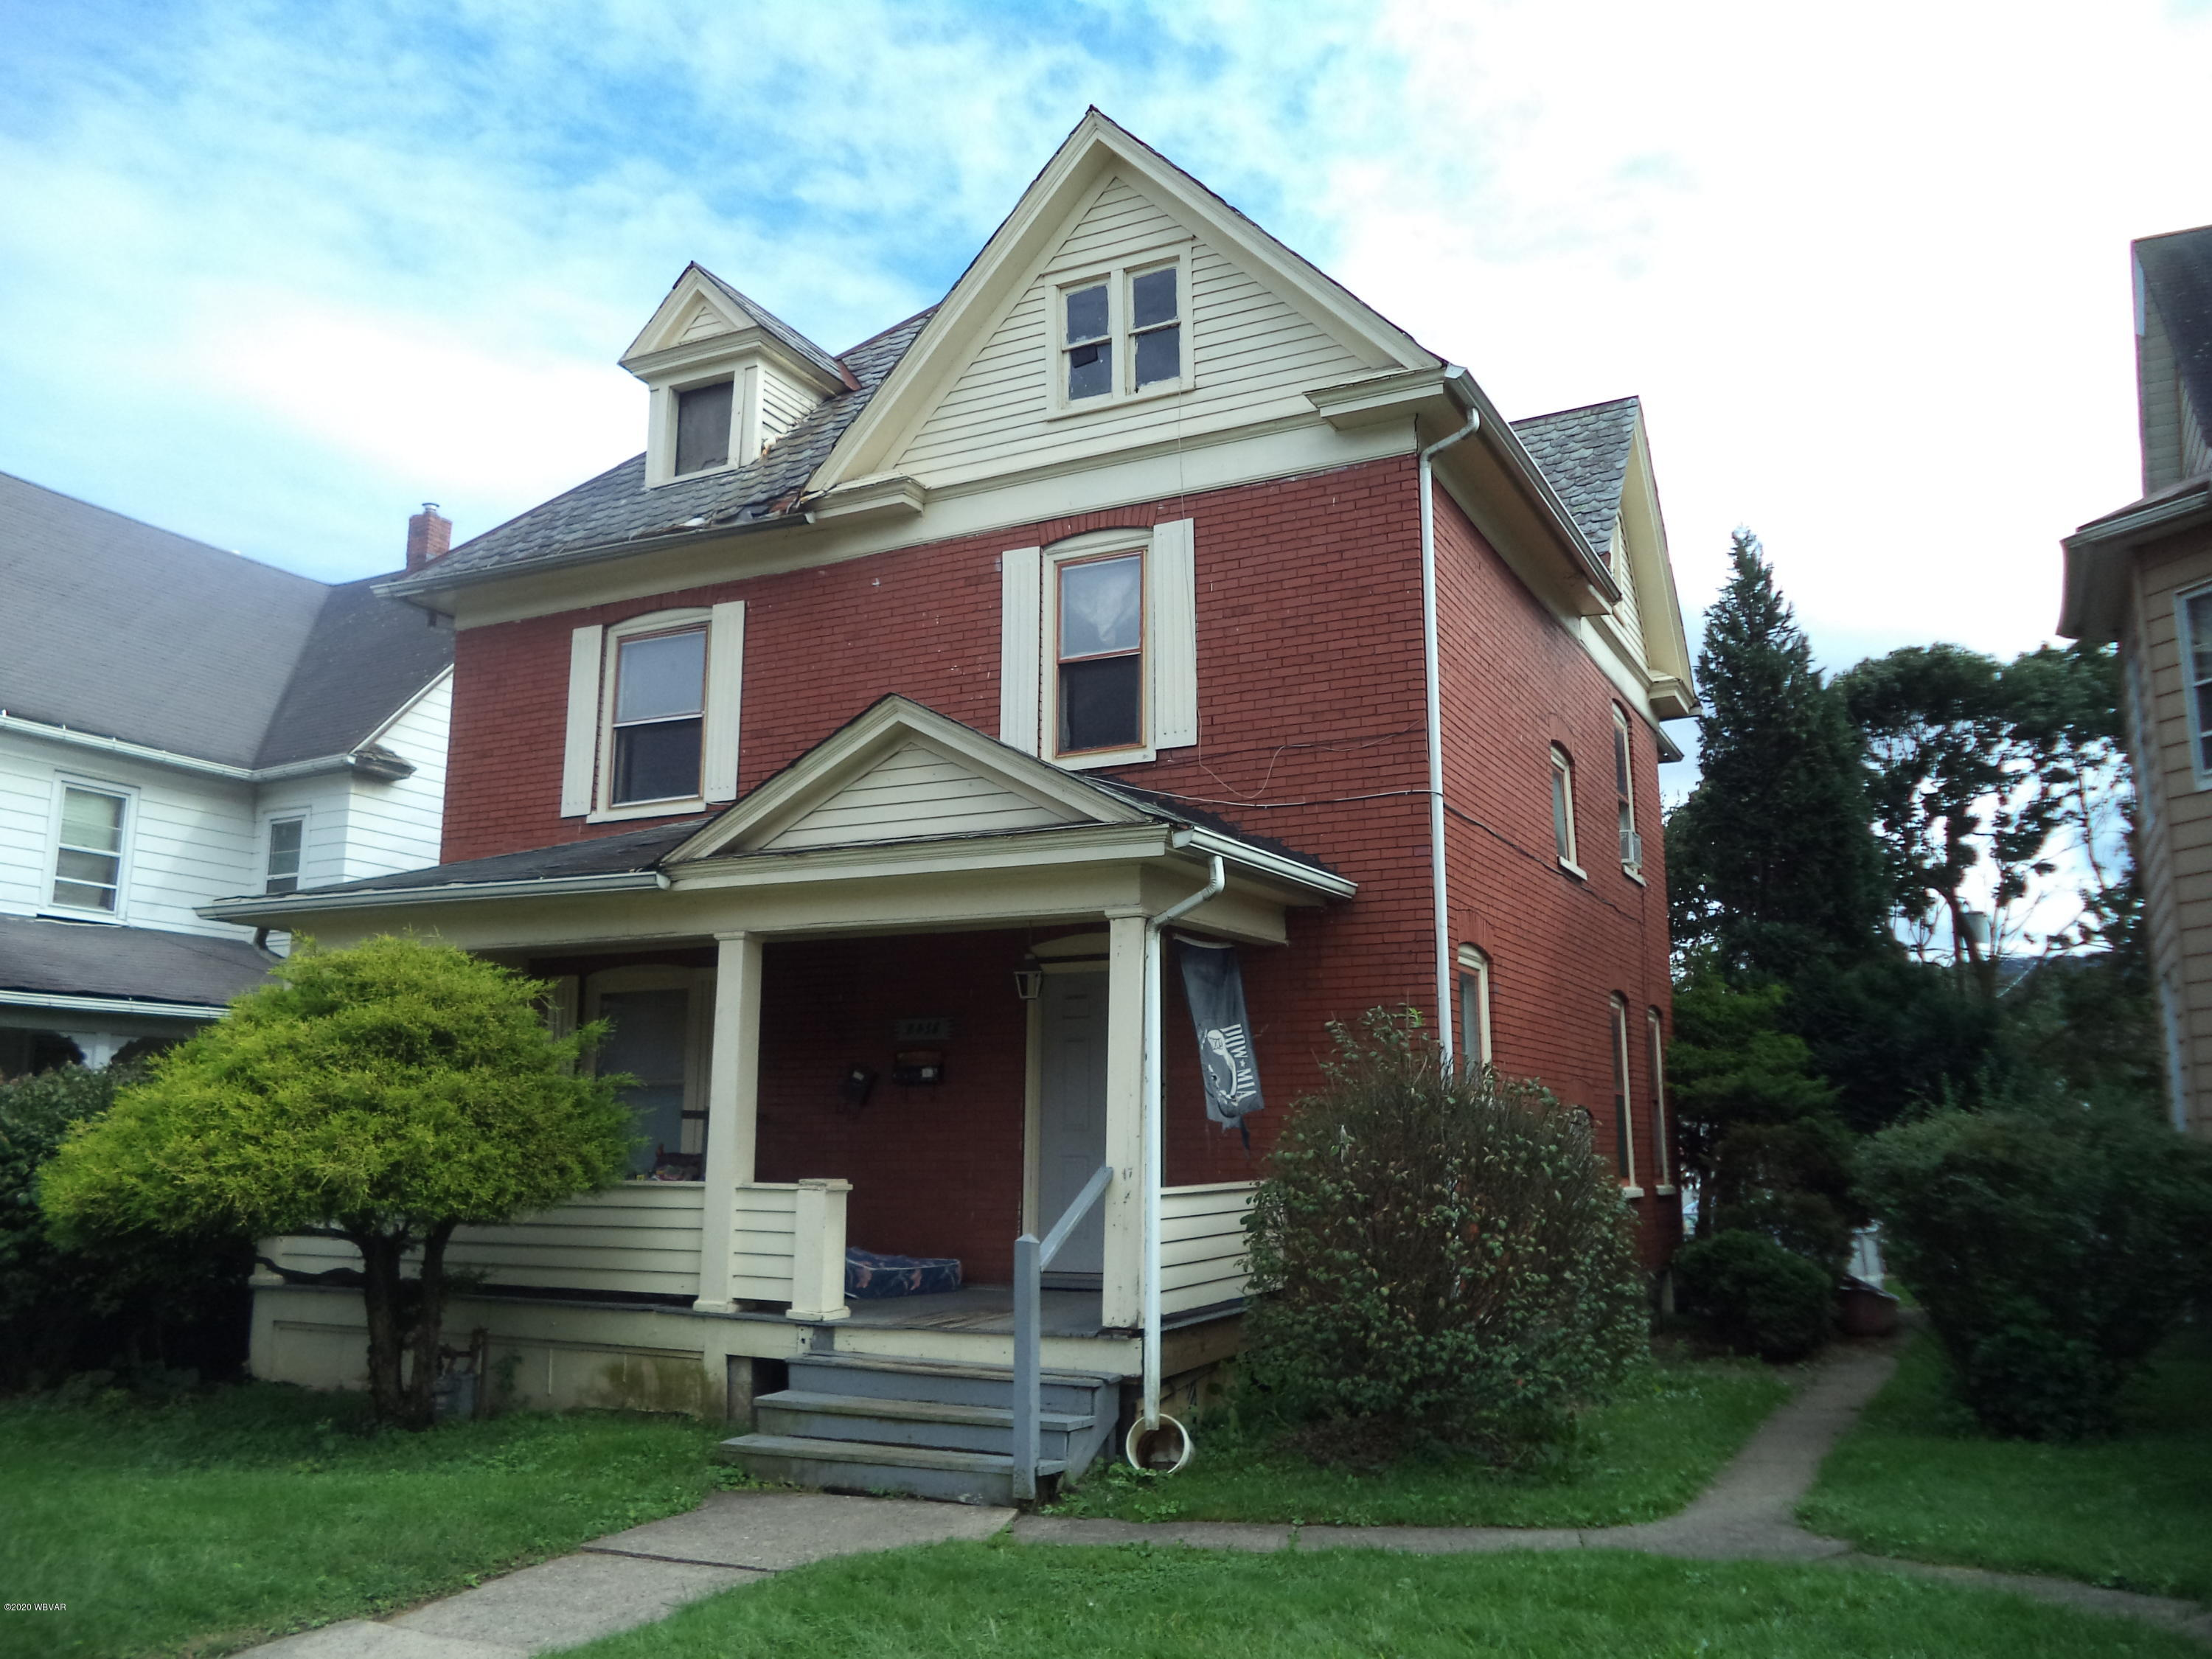 2415 4TH STREET, Williamsport, PA 17701, ,Multi-units,For sale,4TH,WB-90113